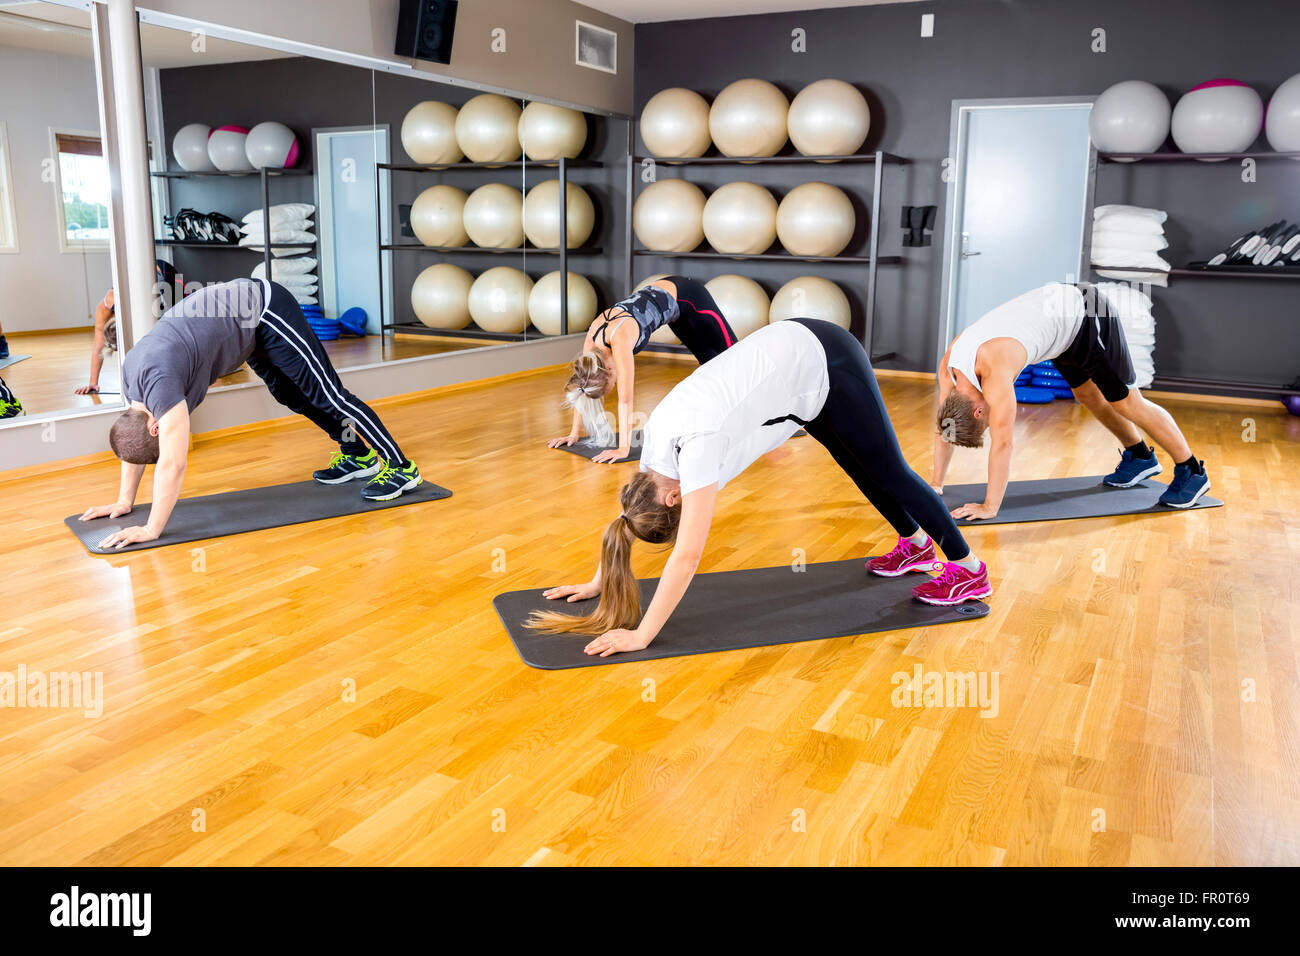 Core Power Yoga Stock Photos Images Alamy Body Gym Pump Warna Group Exercising Flexibility And Balance At Fitness Image